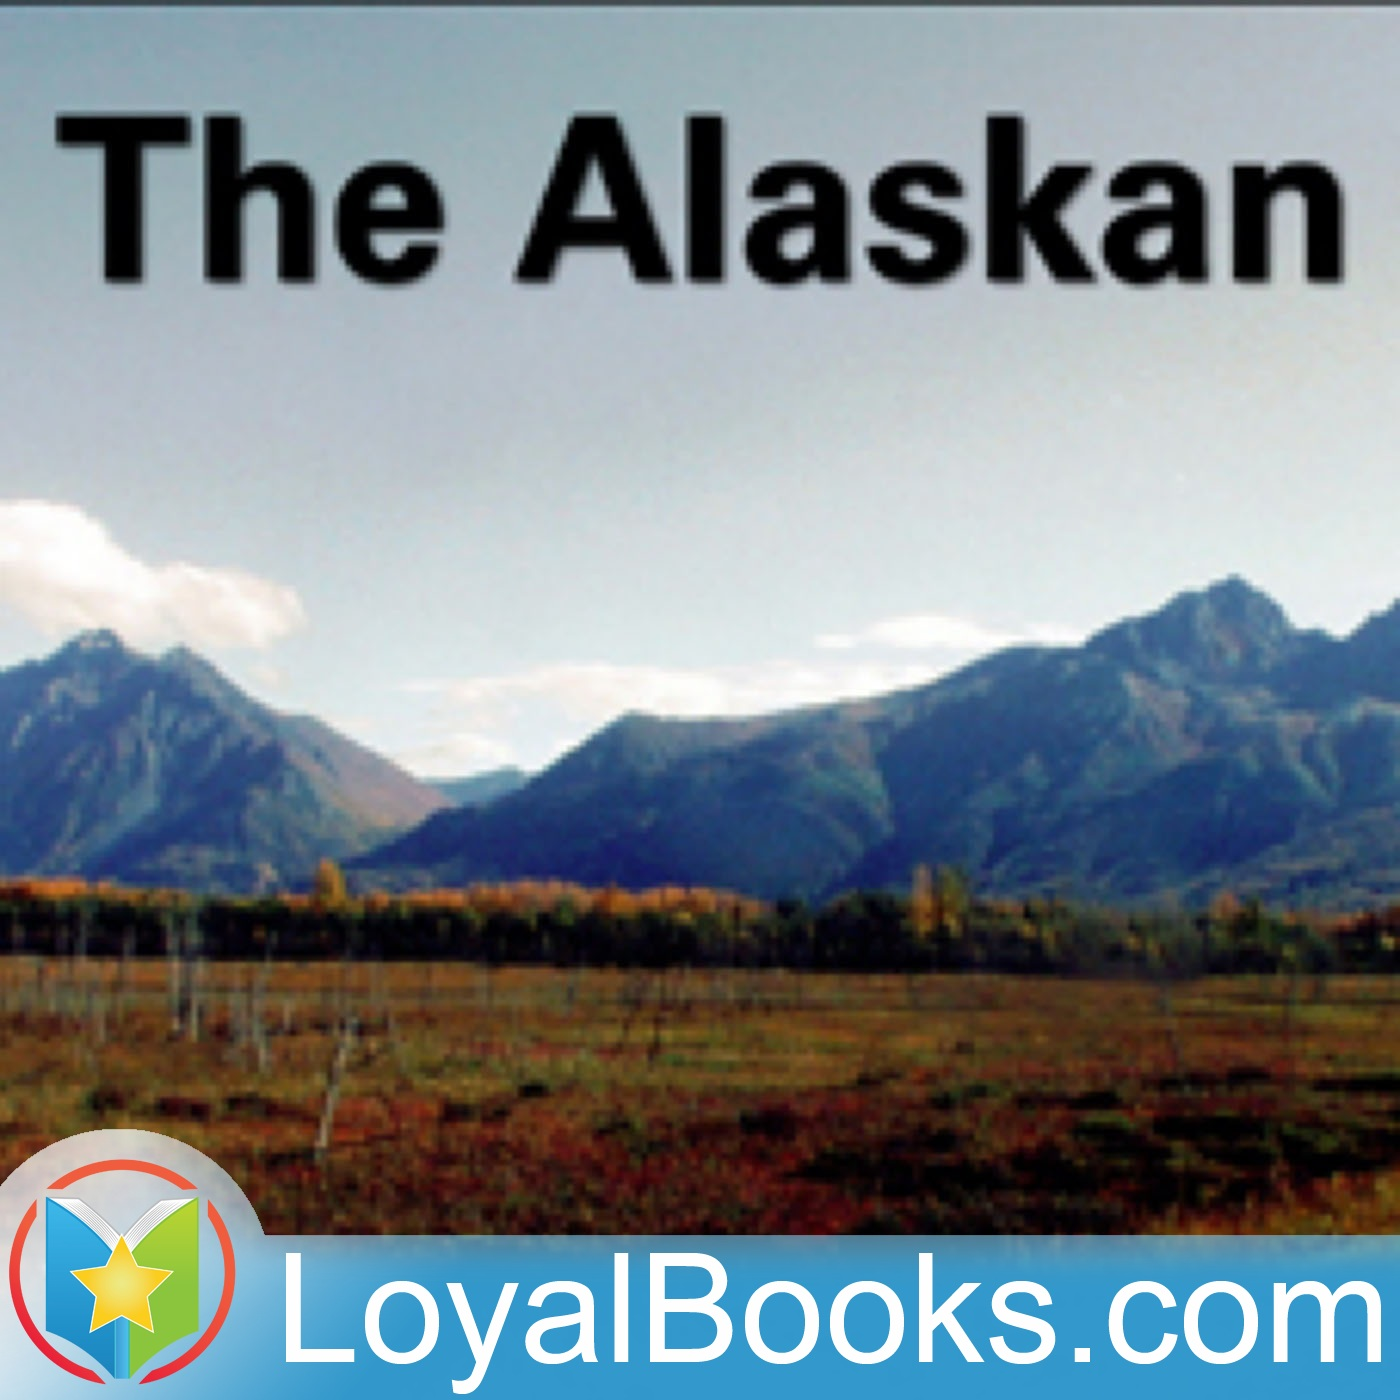 <![CDATA[The Alaskan by James Oliver Curwood]]>